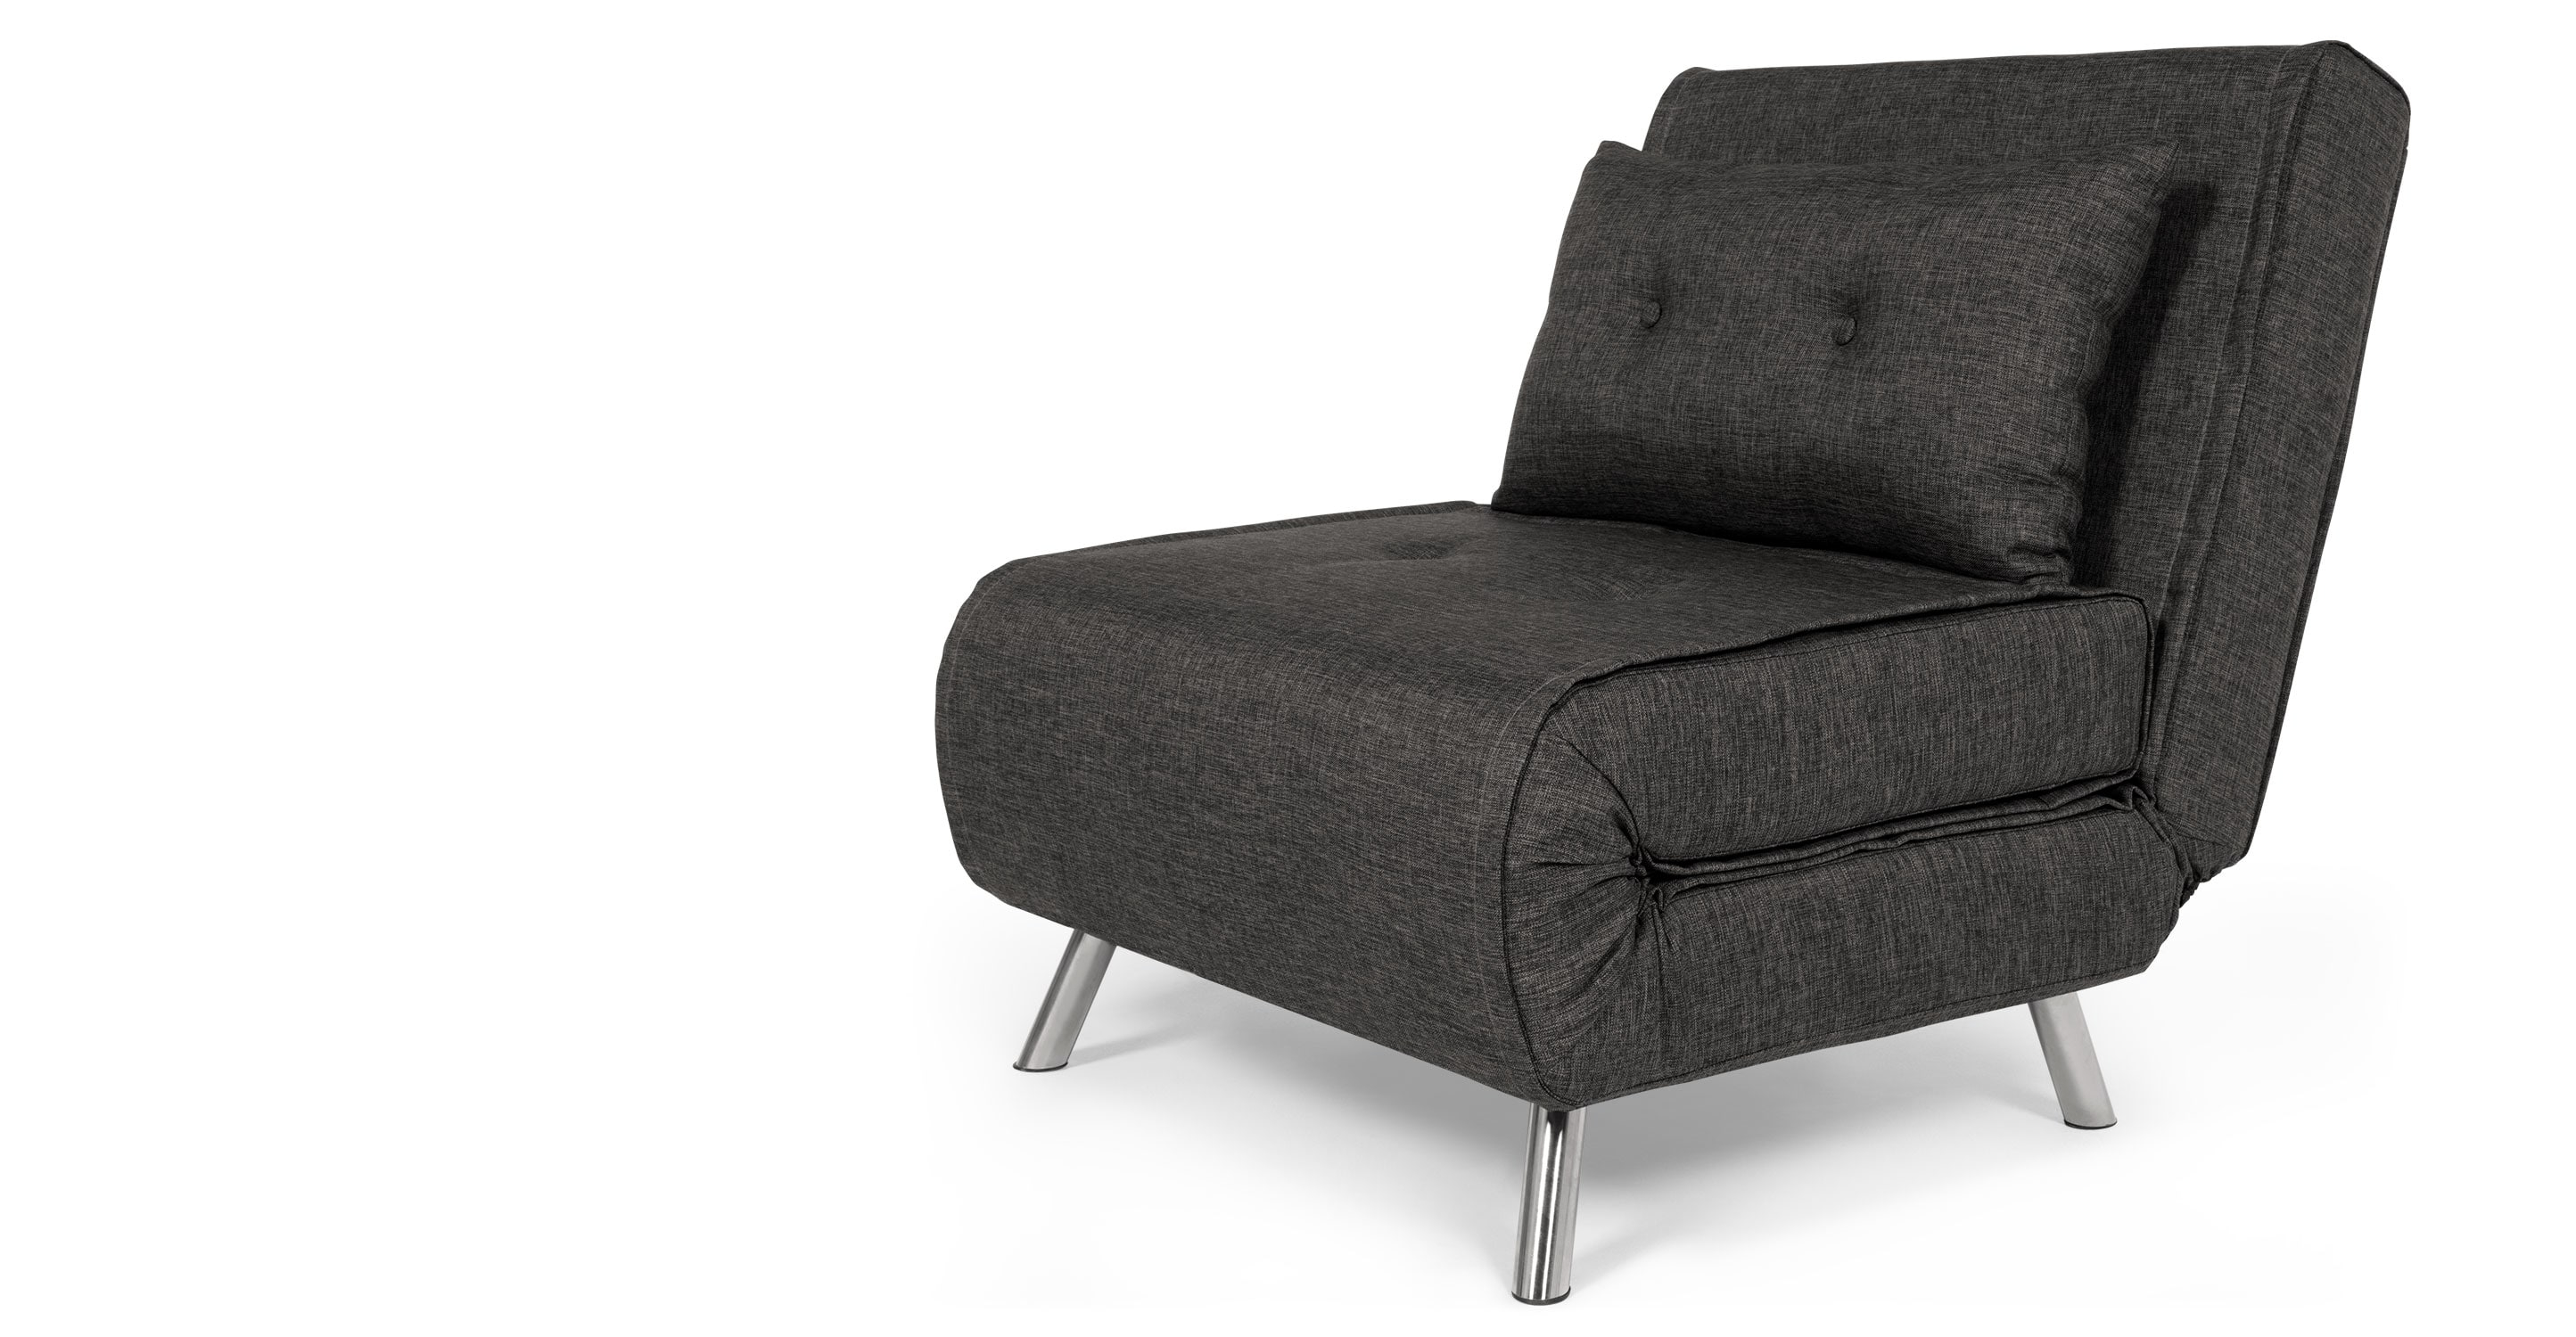 Sofas Center Cassius Deluxe Sofa Chrome The Century House Inside Sofa Bed Chairs (Image 14 of 15)